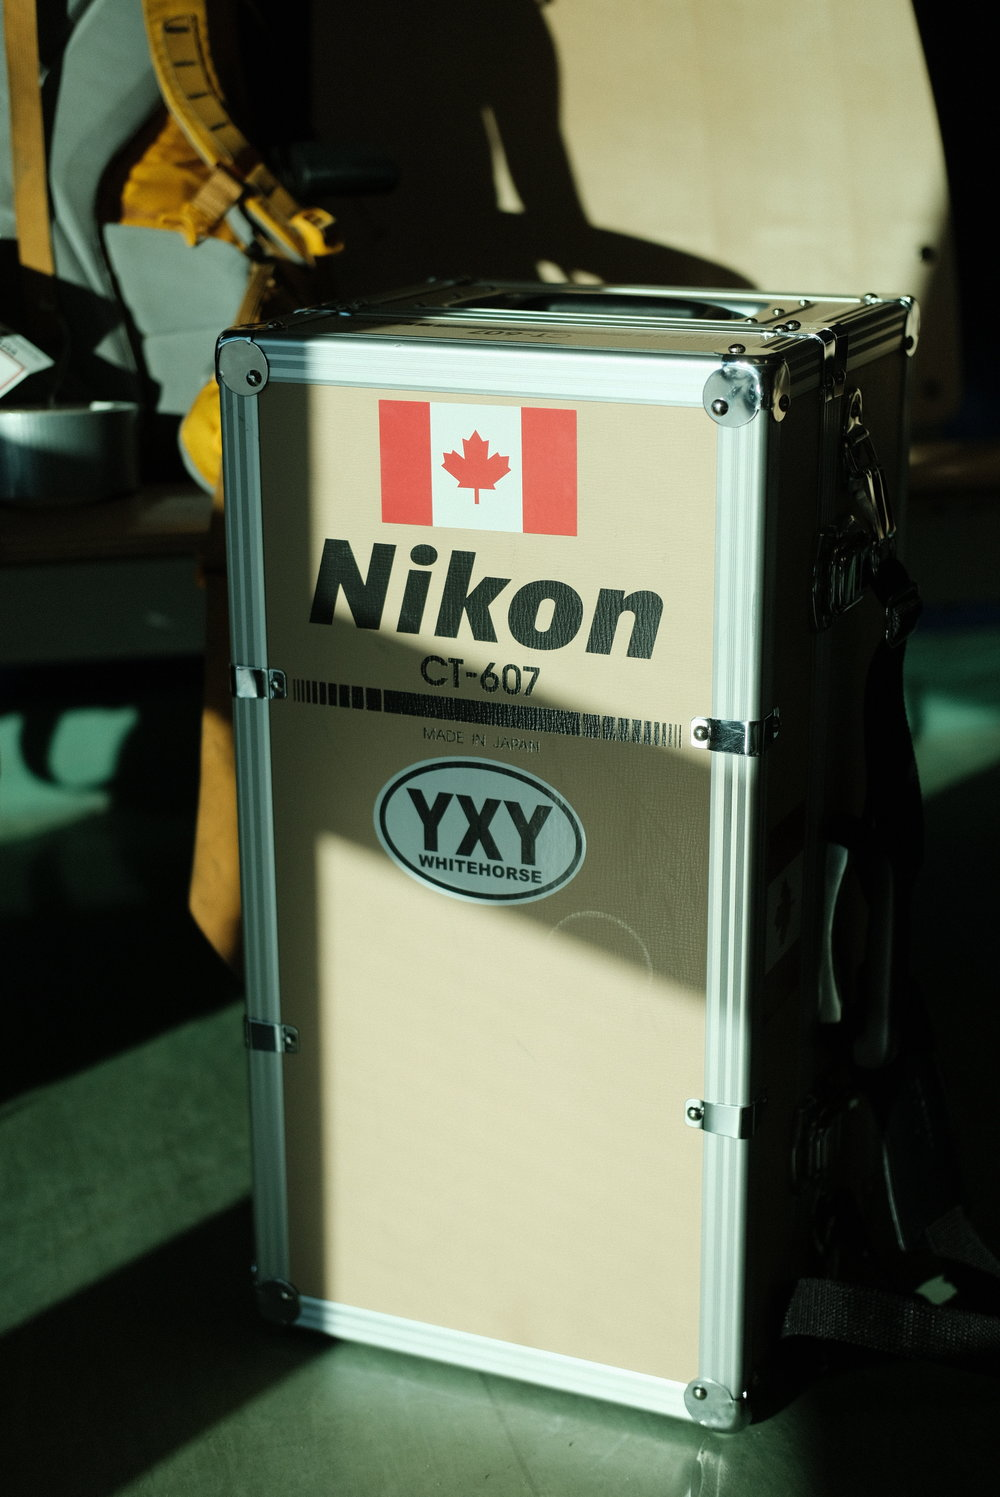 The 600mm trunk case.